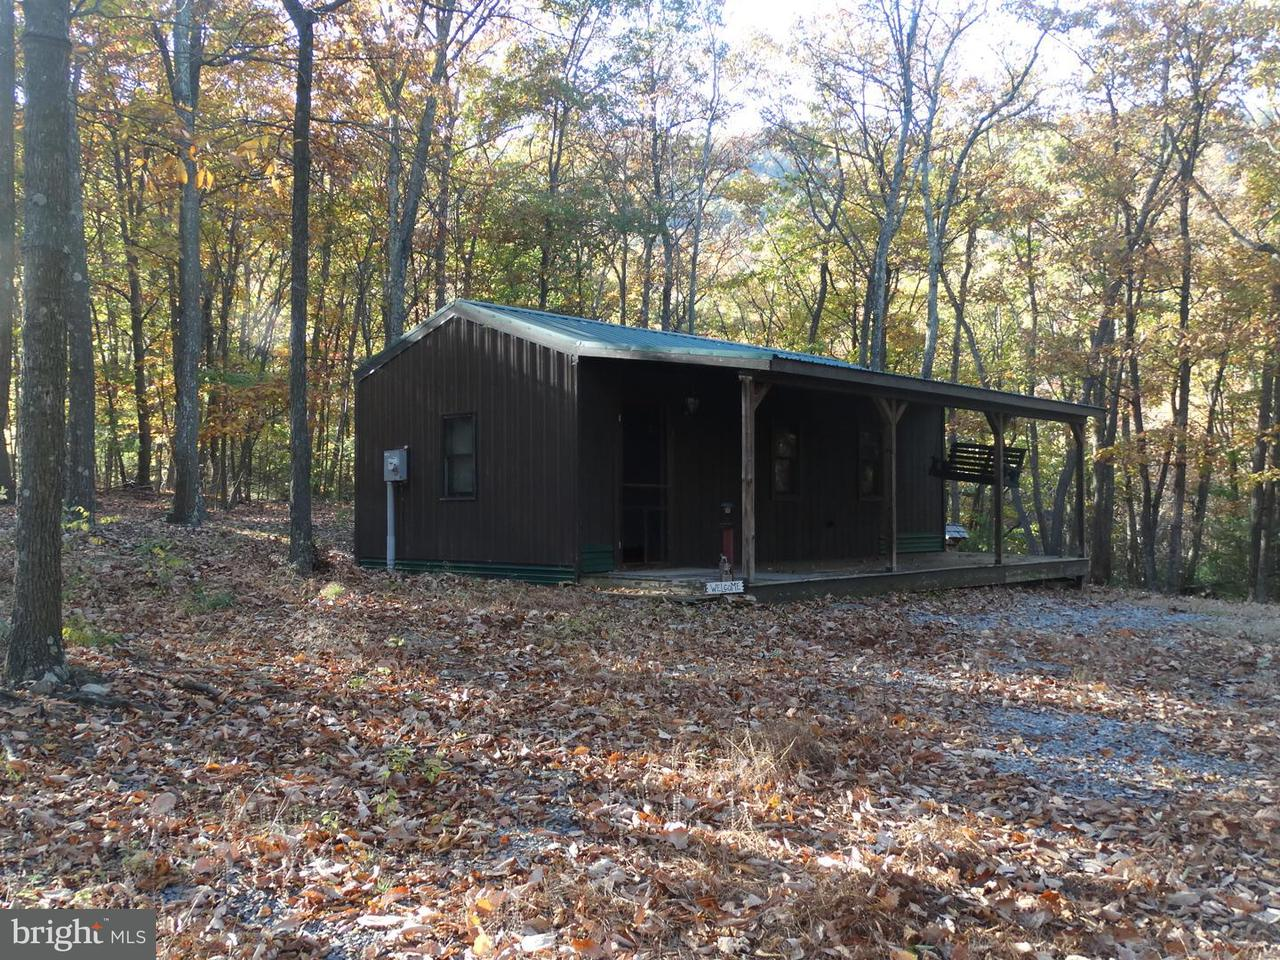 Land for Sale at Lot 2 Path Valley Rd Fort Loudon, Pennsylvania 17224 United States